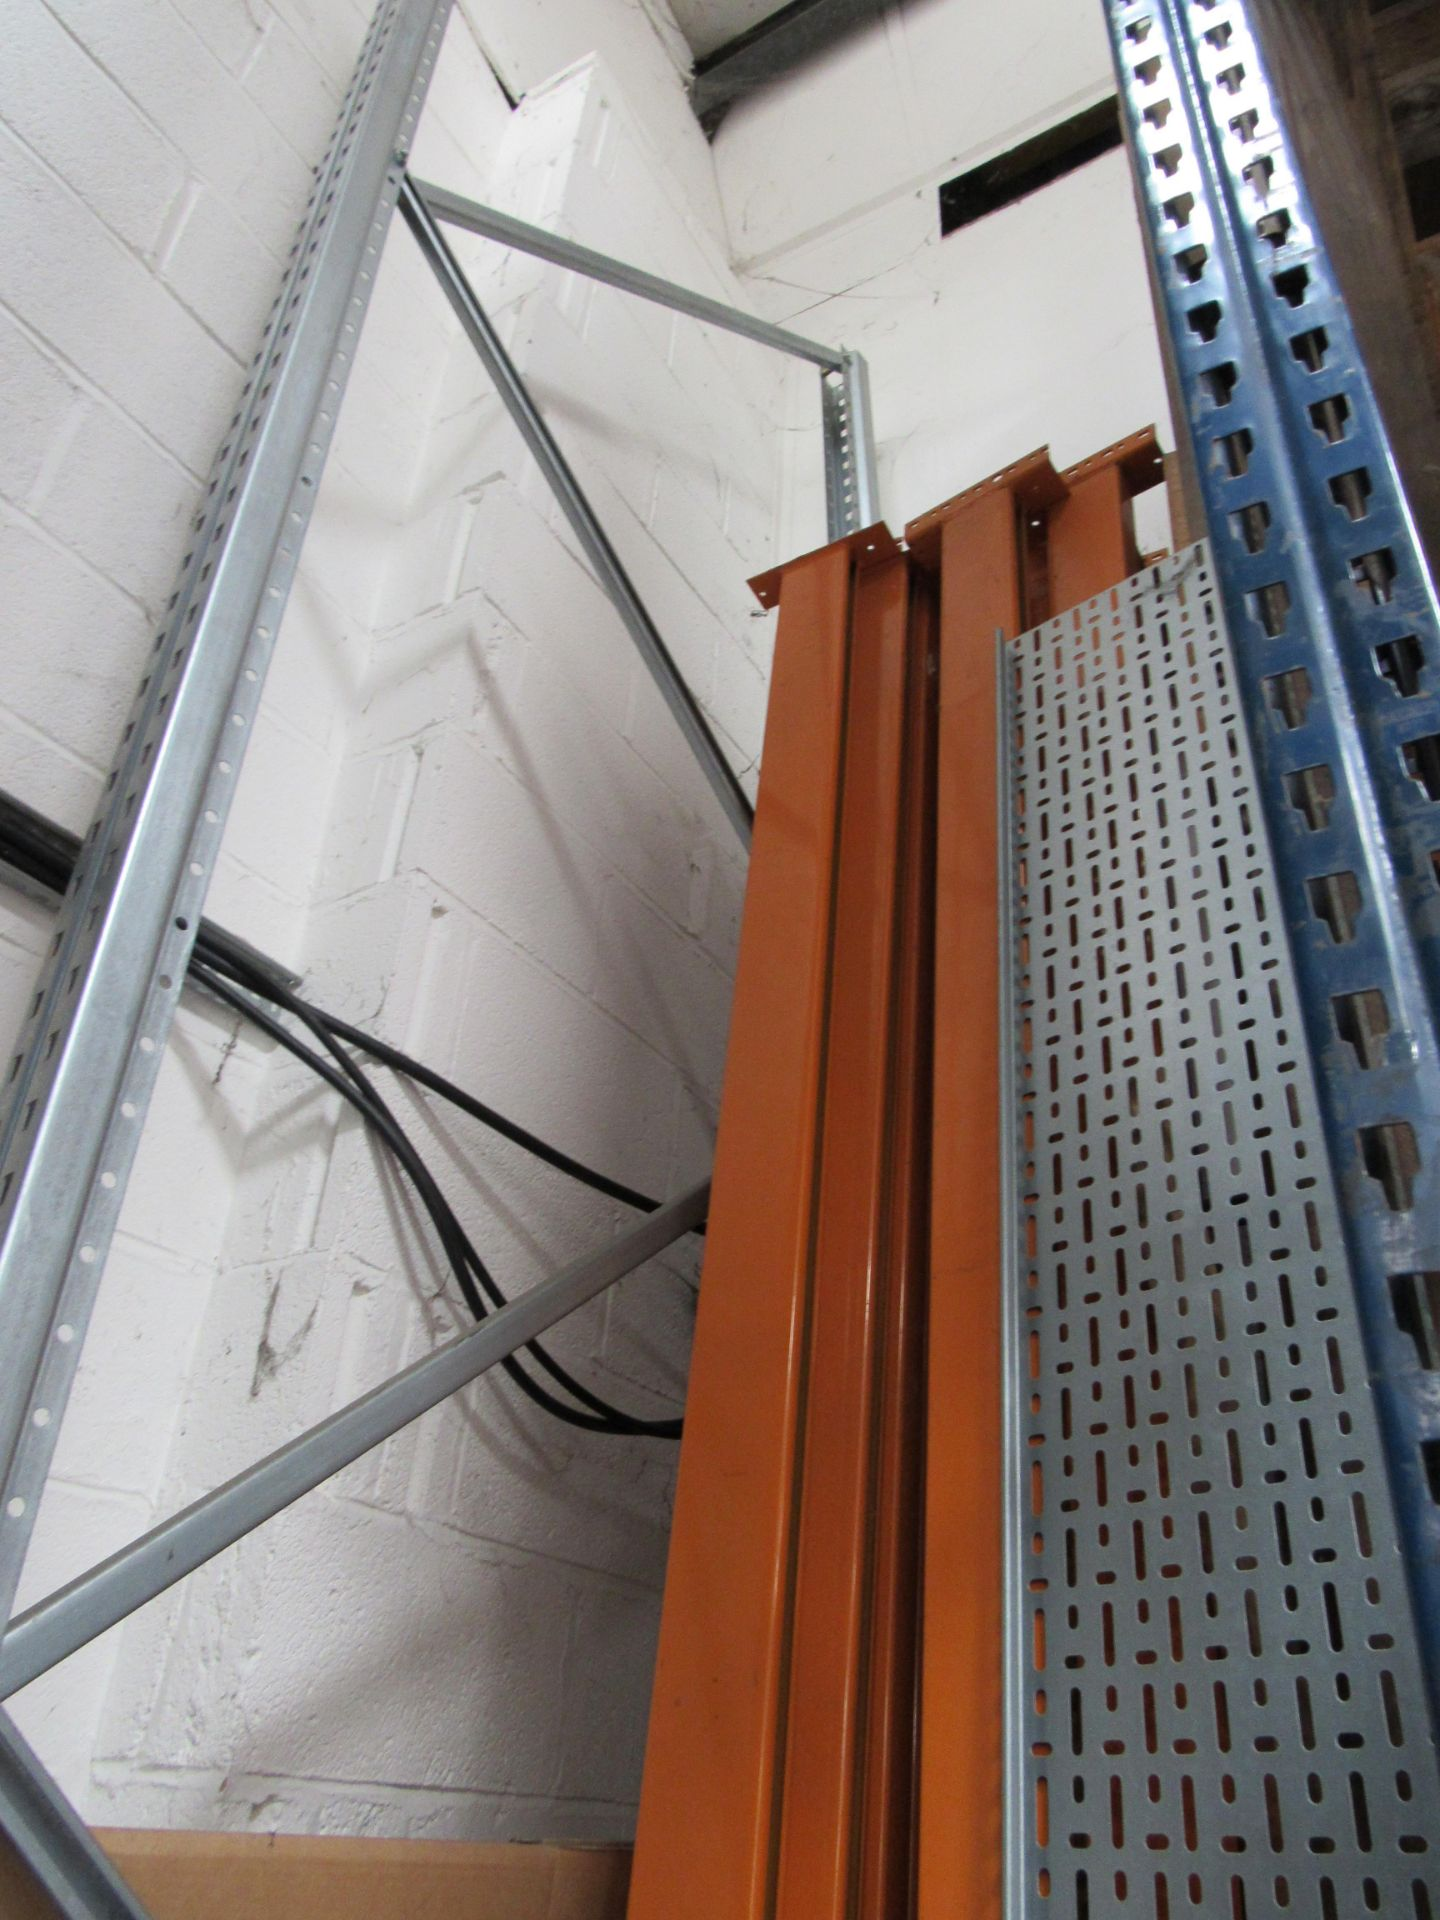 3 Bays Warehouse Racking, 5 End Frames, 12 Cross Beams (assembled) plus 1 End Frame and Approx. 16 - Image 5 of 6